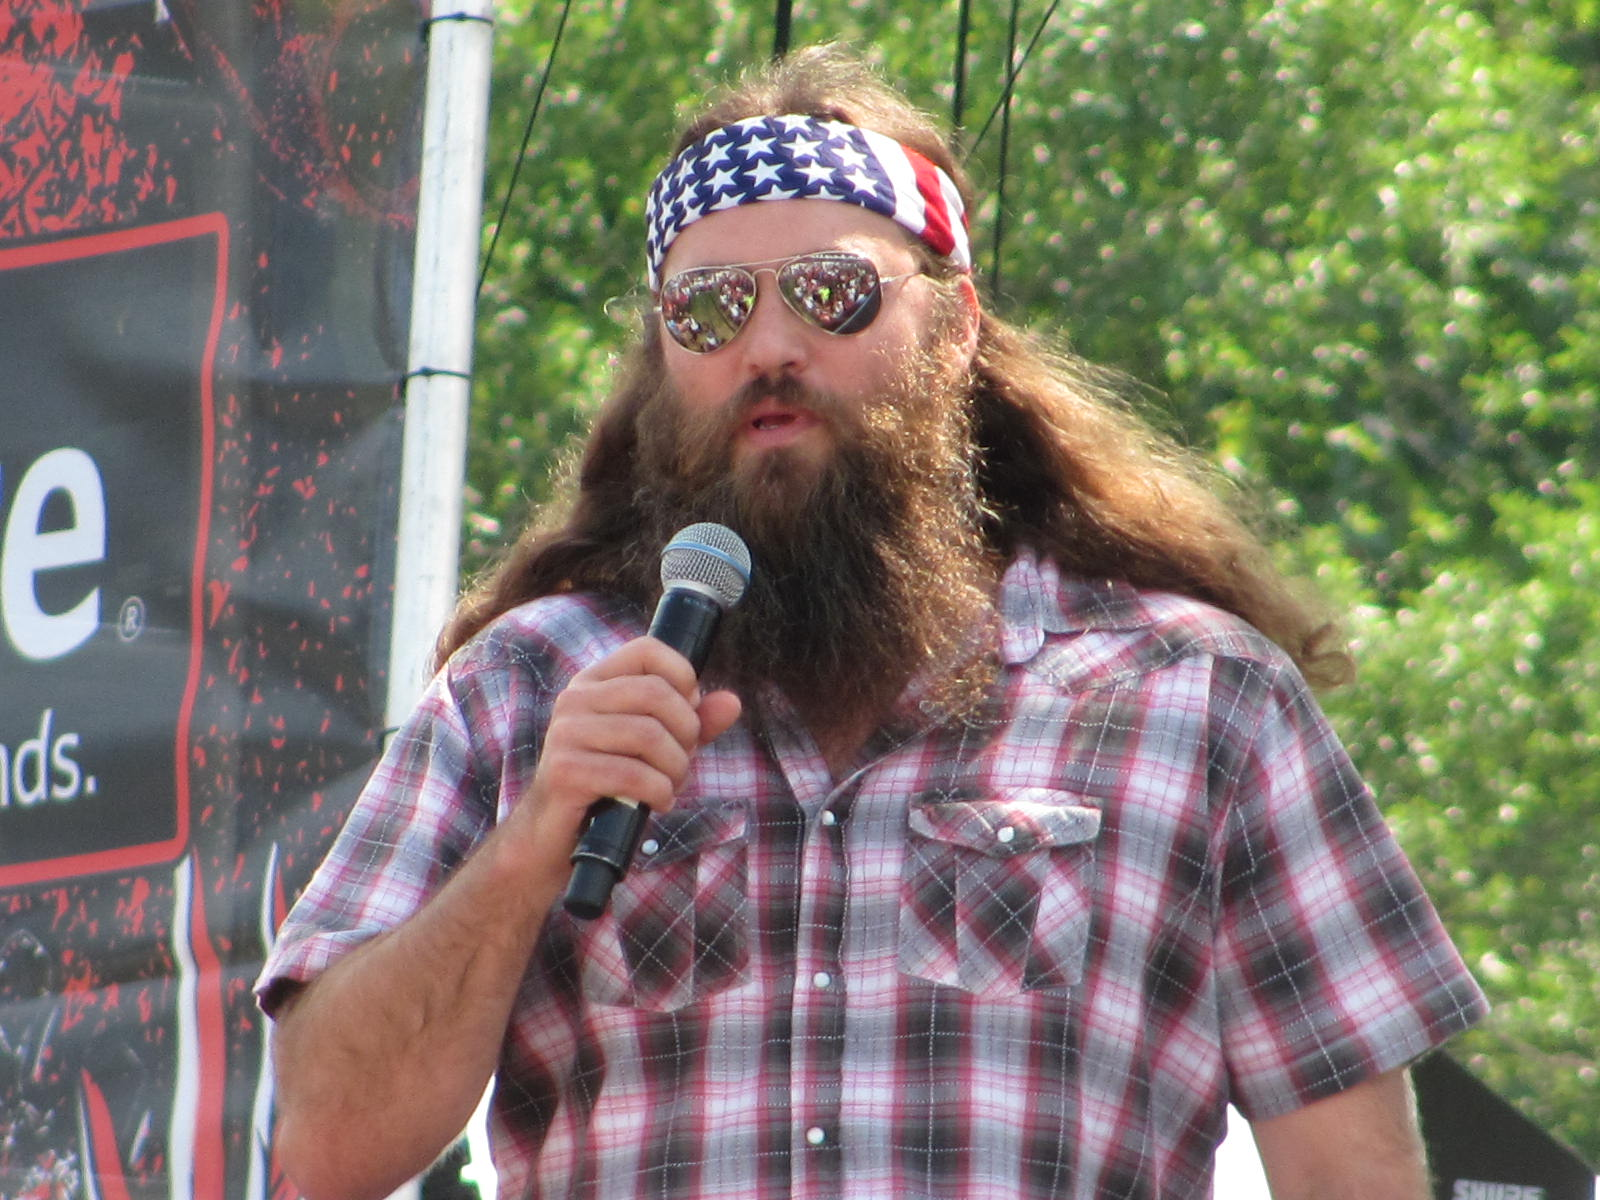 3 Things I Learned About Leadership When I Met The Duck Dynasty CEO